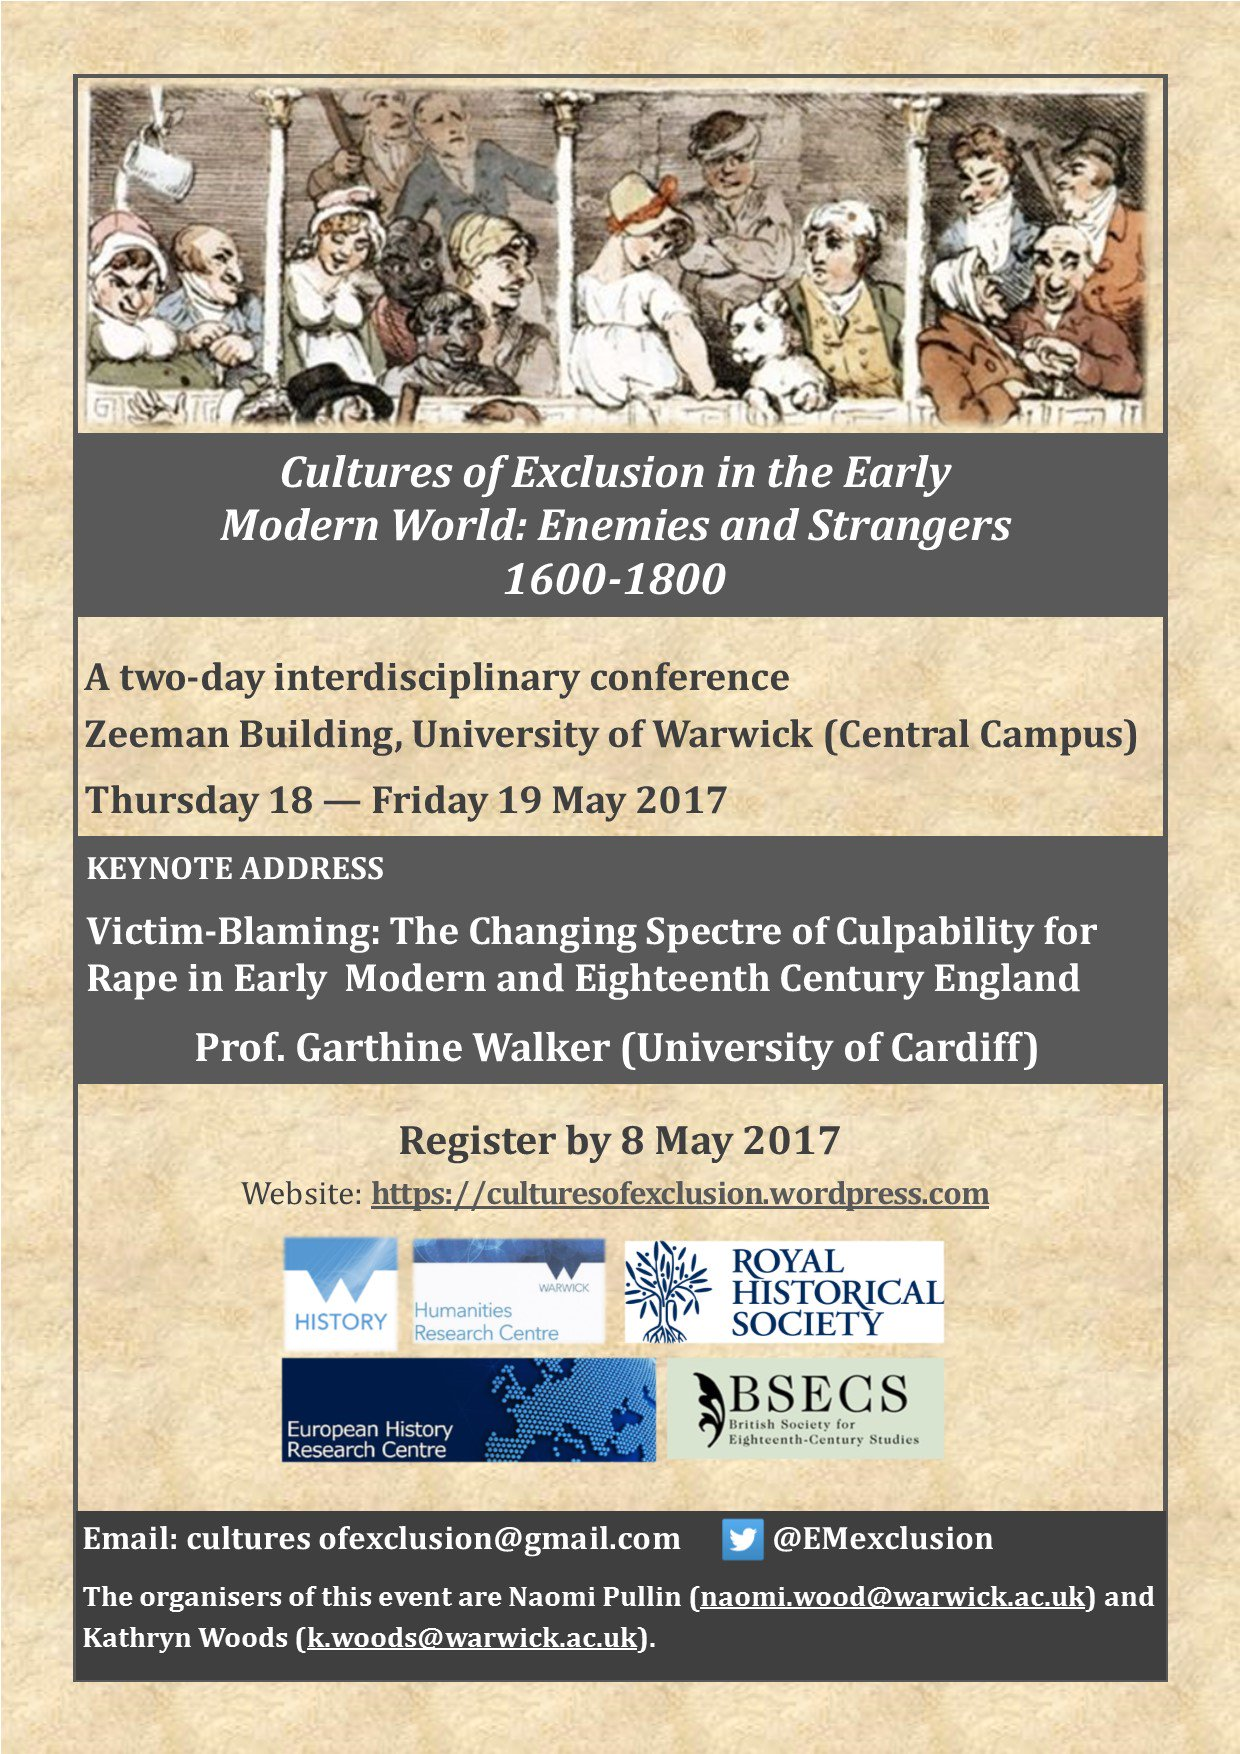 Registration for Cultures of Exclusion in EM World conf. @WarwickHistory is now open with fab line-up: https://t.co/xRbno3E1x5 #earlymodern https://t.co/uiegmaGjCg